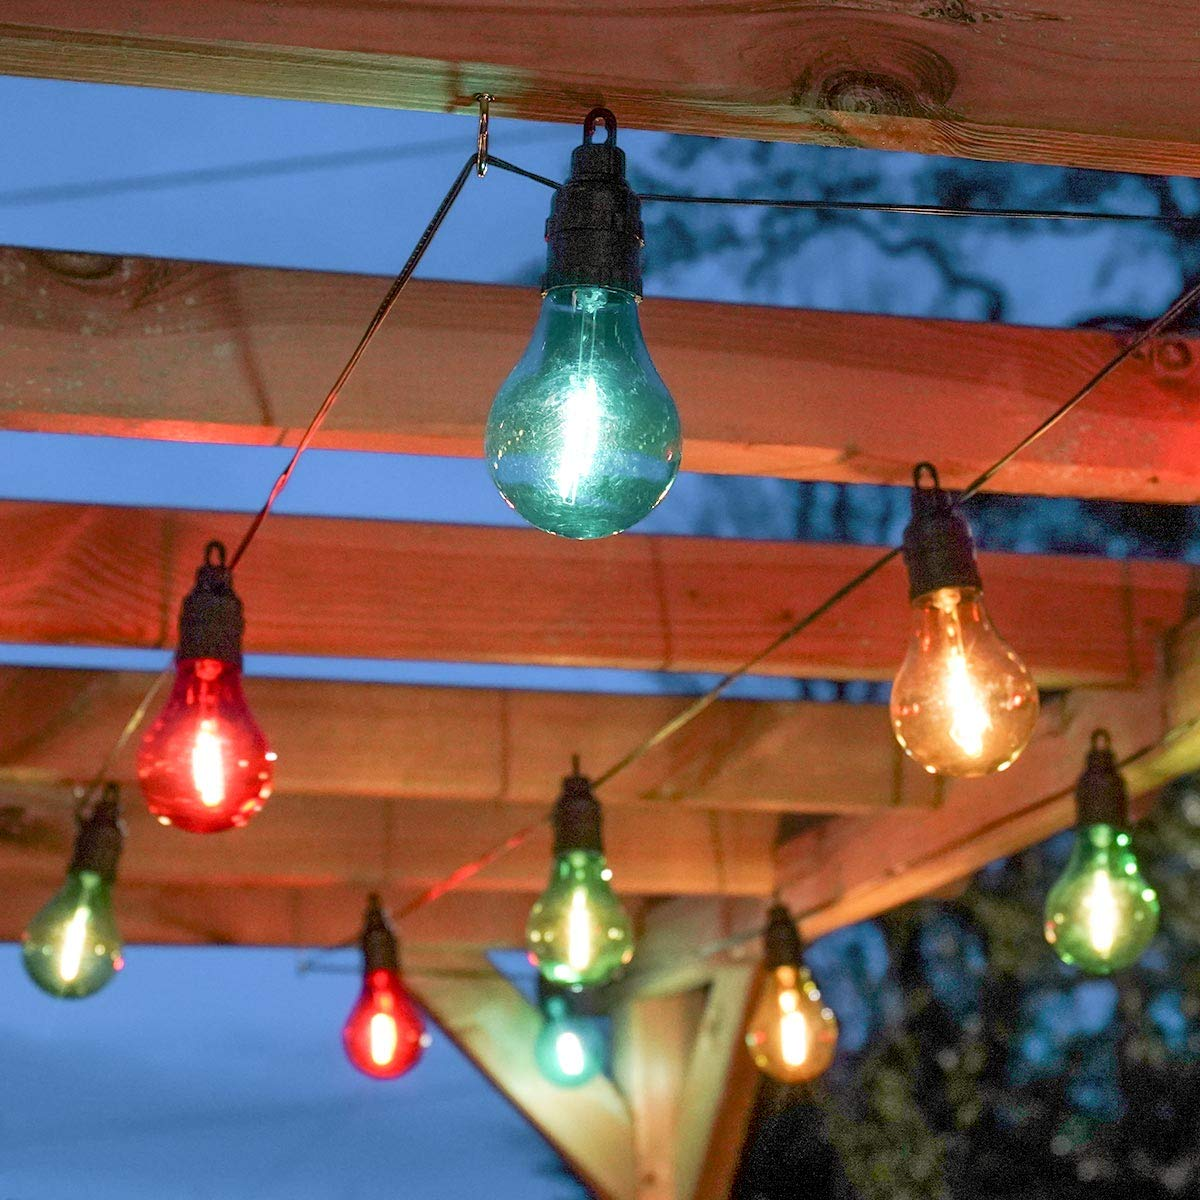 Decorative Lighting 4.5m Lit Length Timer Battery Powered LED Filament Bulb Outdoor Festoon Party Lights Multicolour